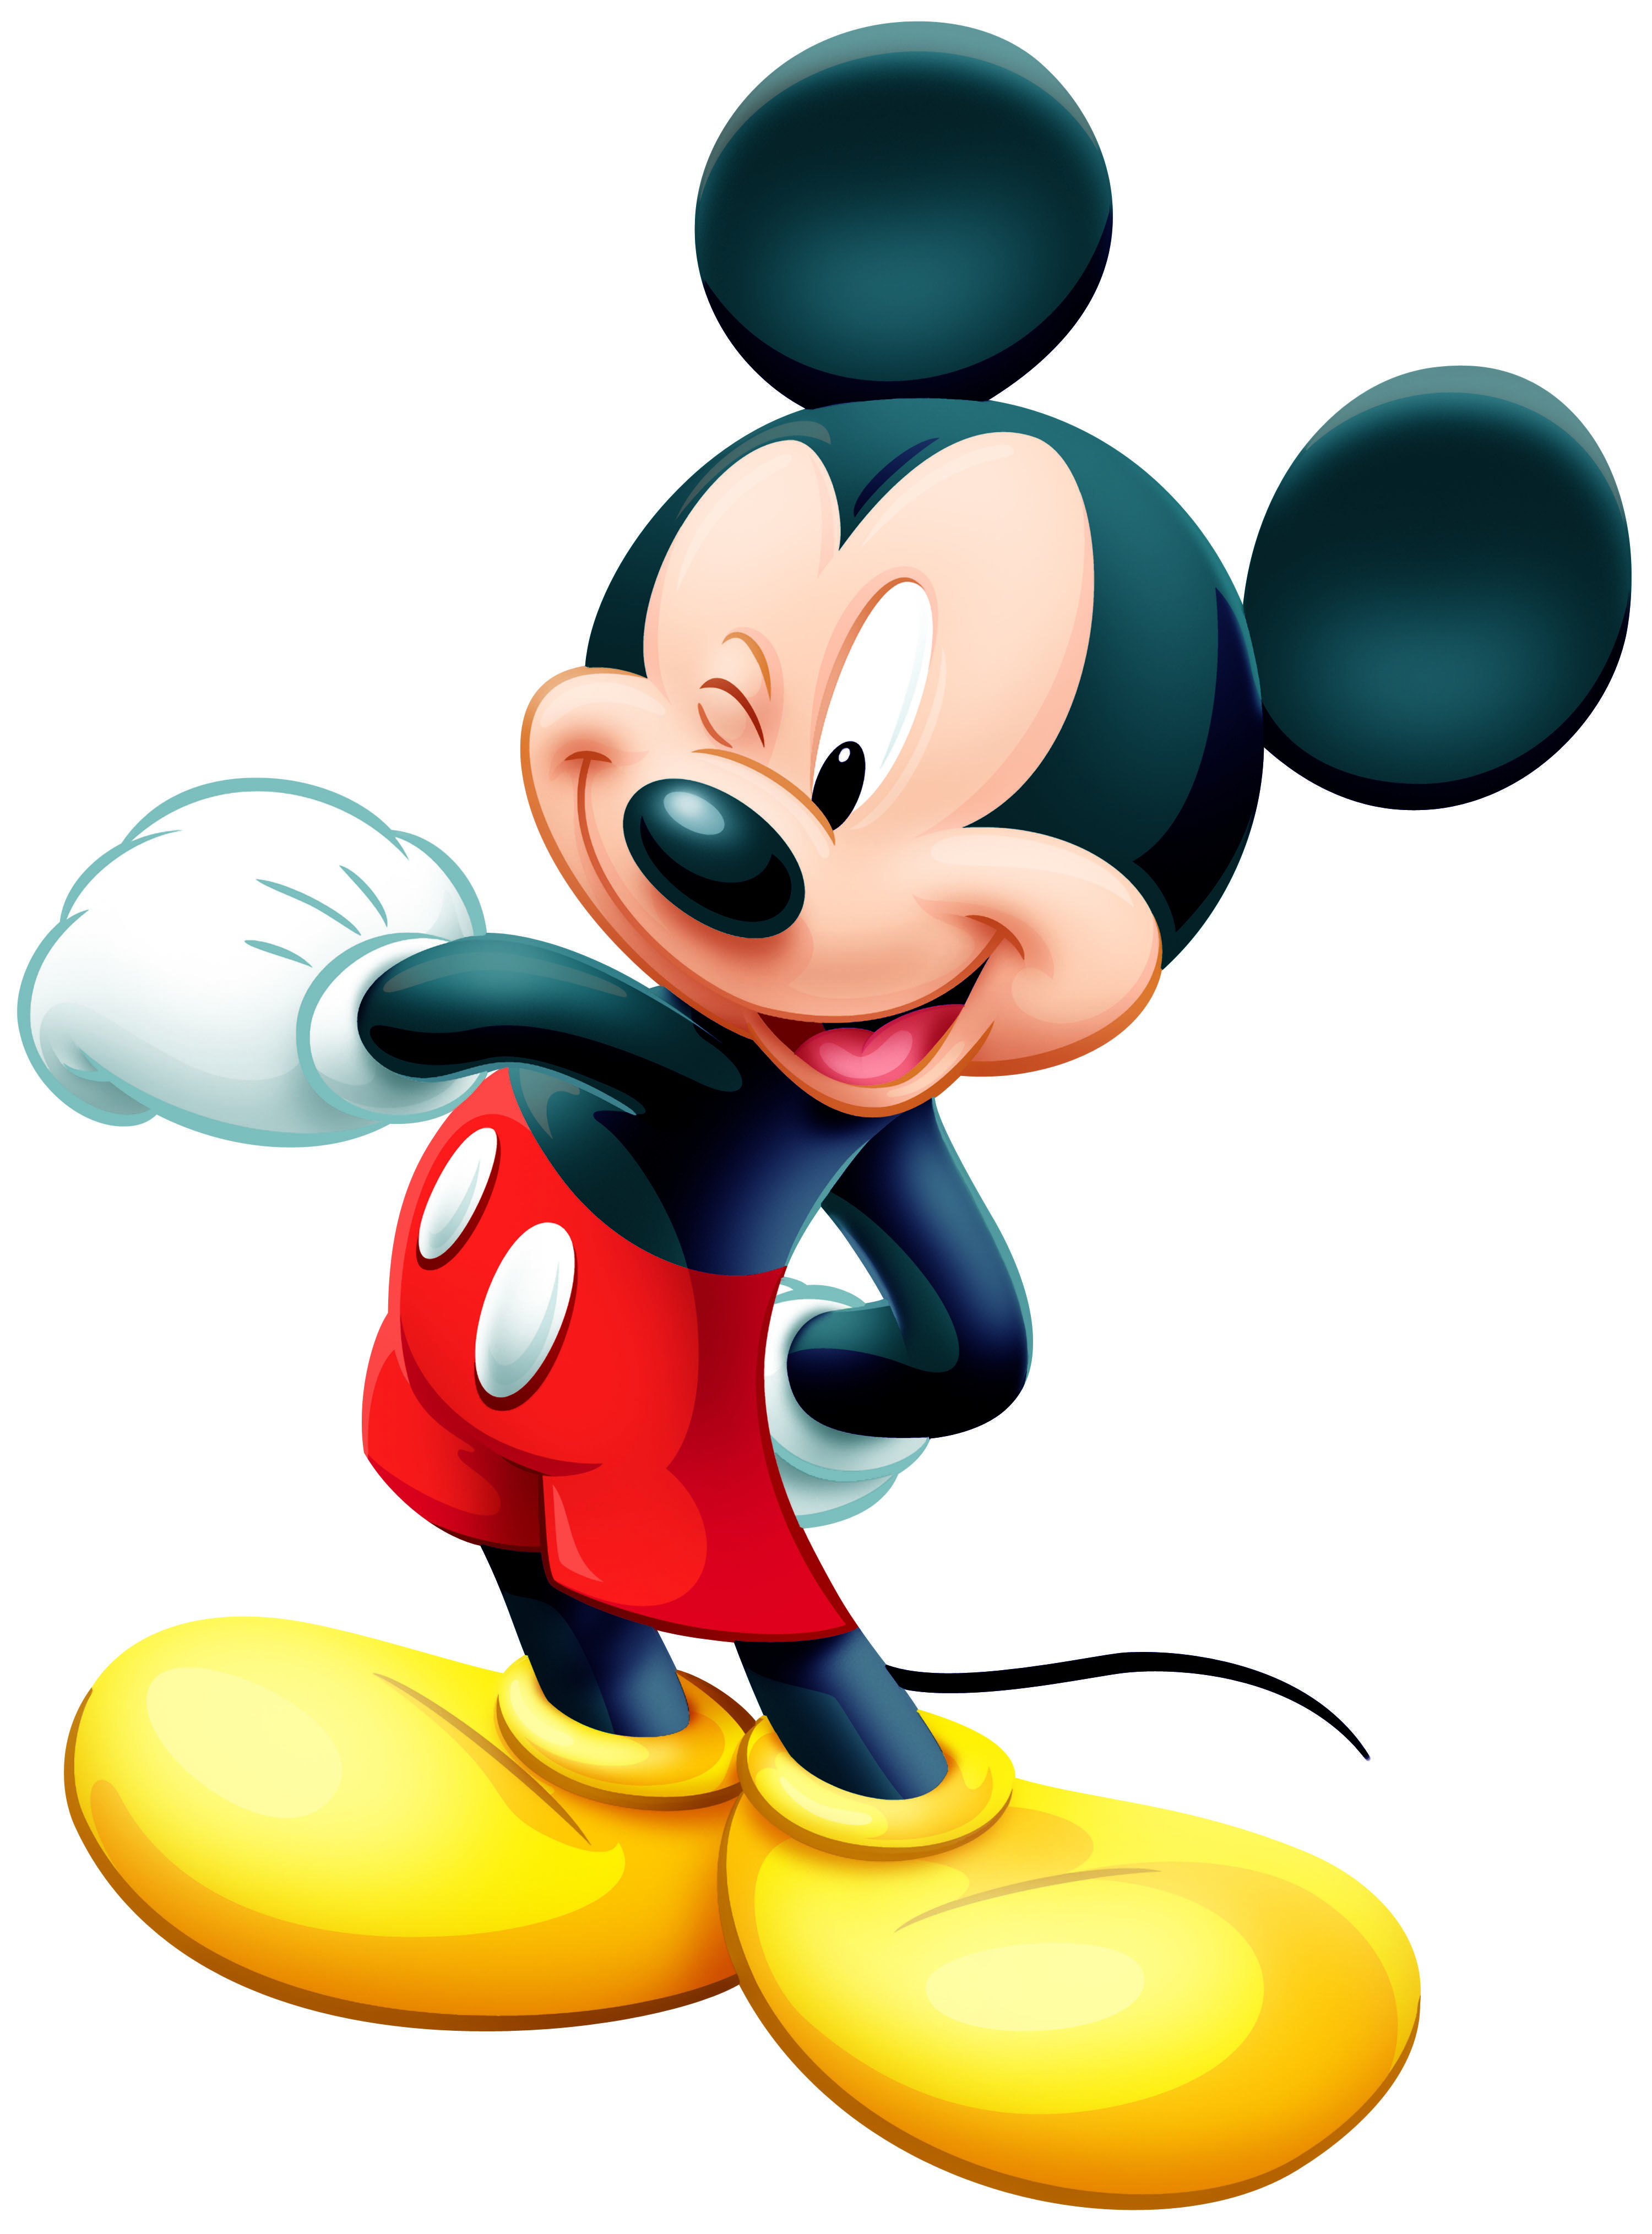 Disney Mickey My Summer Disney Vacation From Hell Shana Figueroa S Blog